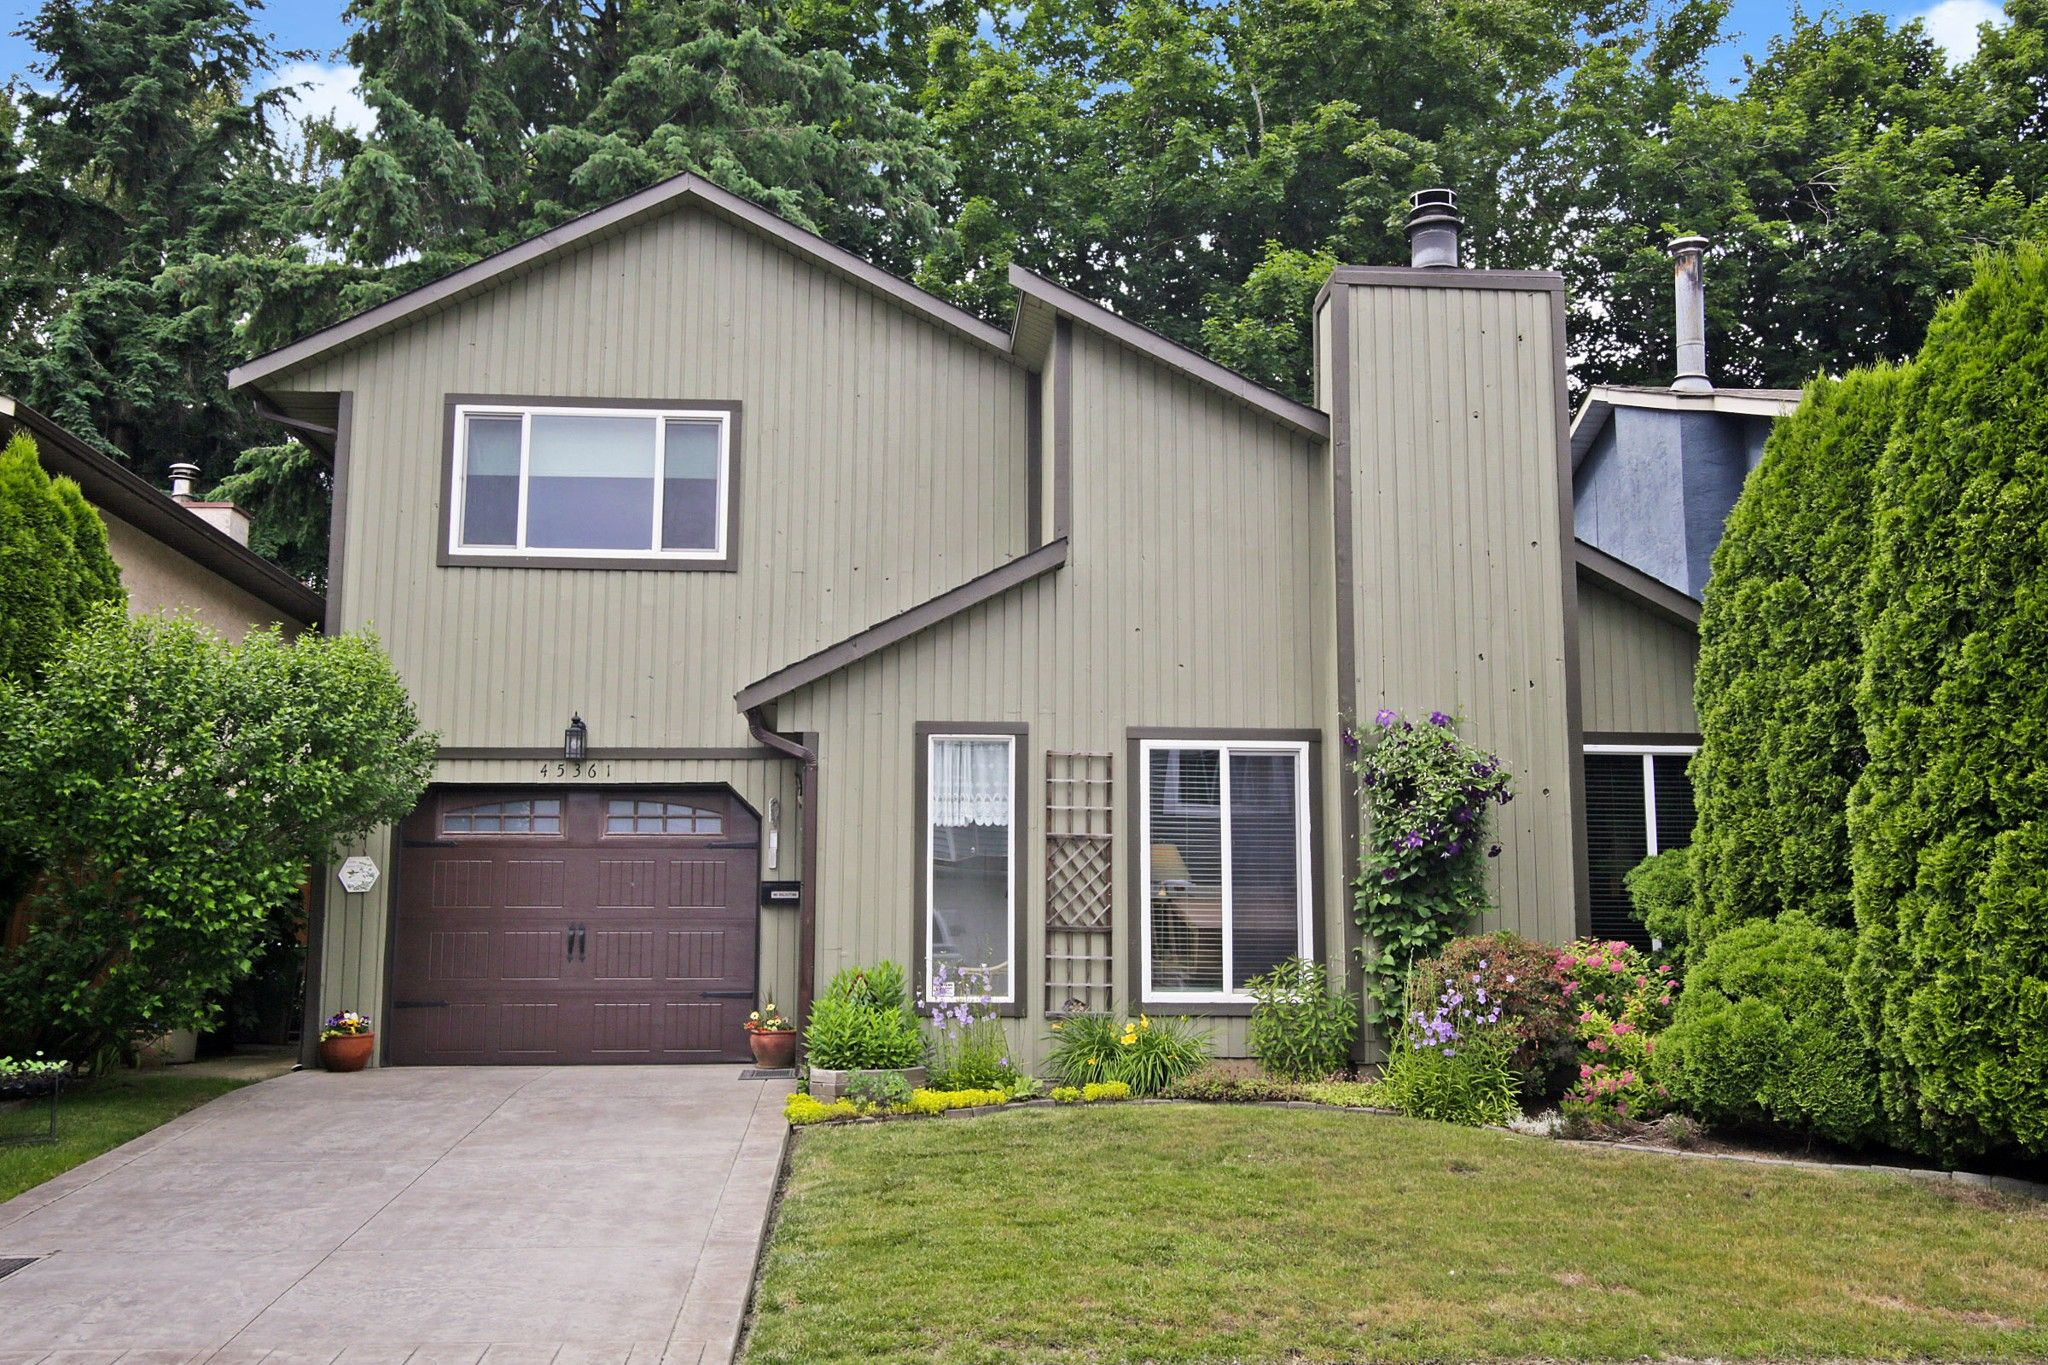 Main Photo: 45361 MCINTOSH Drive in Chilliwack: Chilliwack W Young-Well House for sale : MLS®# R2594568